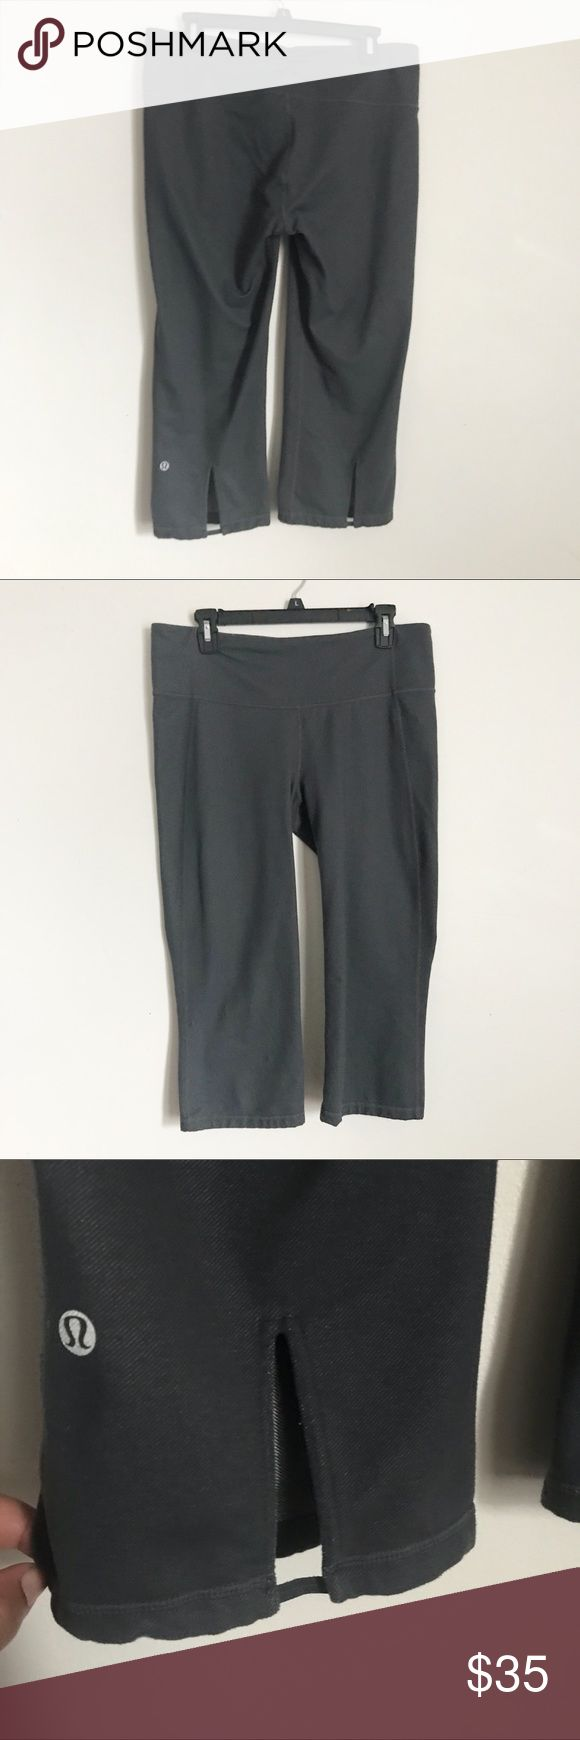 LULULEMON  Heathered Gray Slit Back Yoga Capris Good Condition  Sort of like the  LULULEMON Gather And Crow Heathered Gray Slit Back Yoga Capri Pants Size 12  3rd photo shows  actual colour better. lululemon athletica Pants Capris